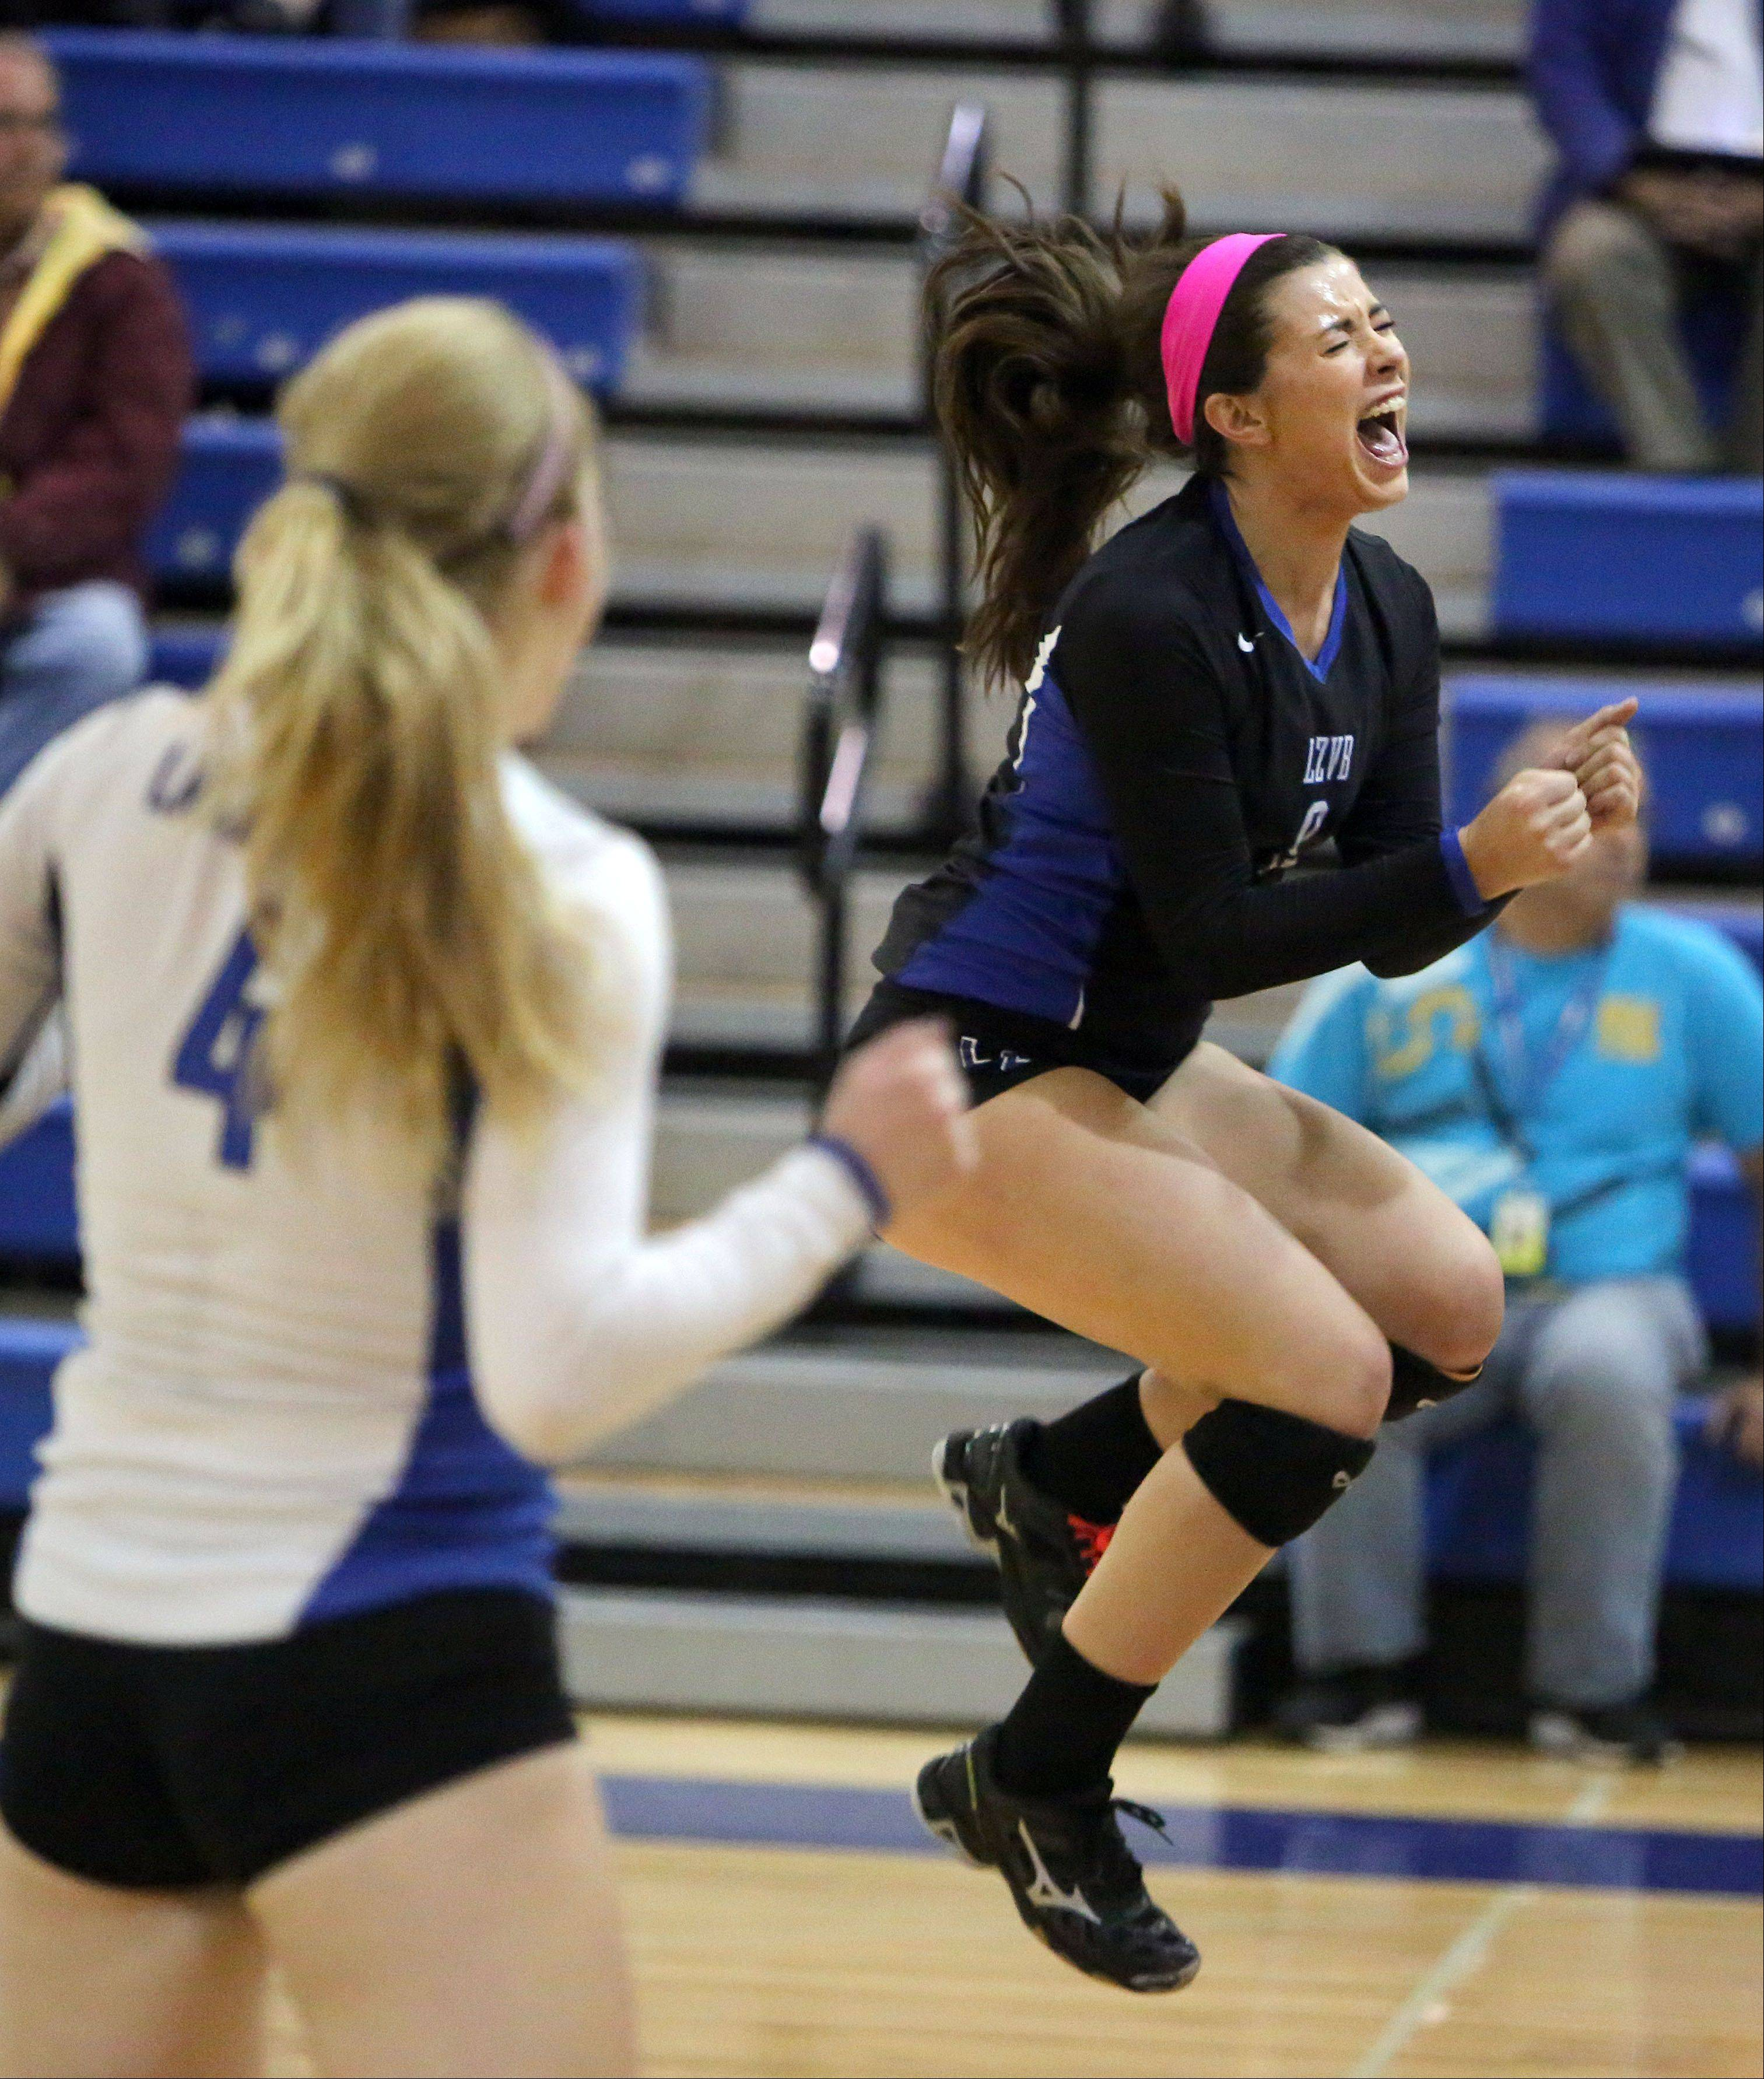 Lake Zurich's Ashley Dina celebrates a point during Wednesday's NSC title against Lakes in Lake Villa.